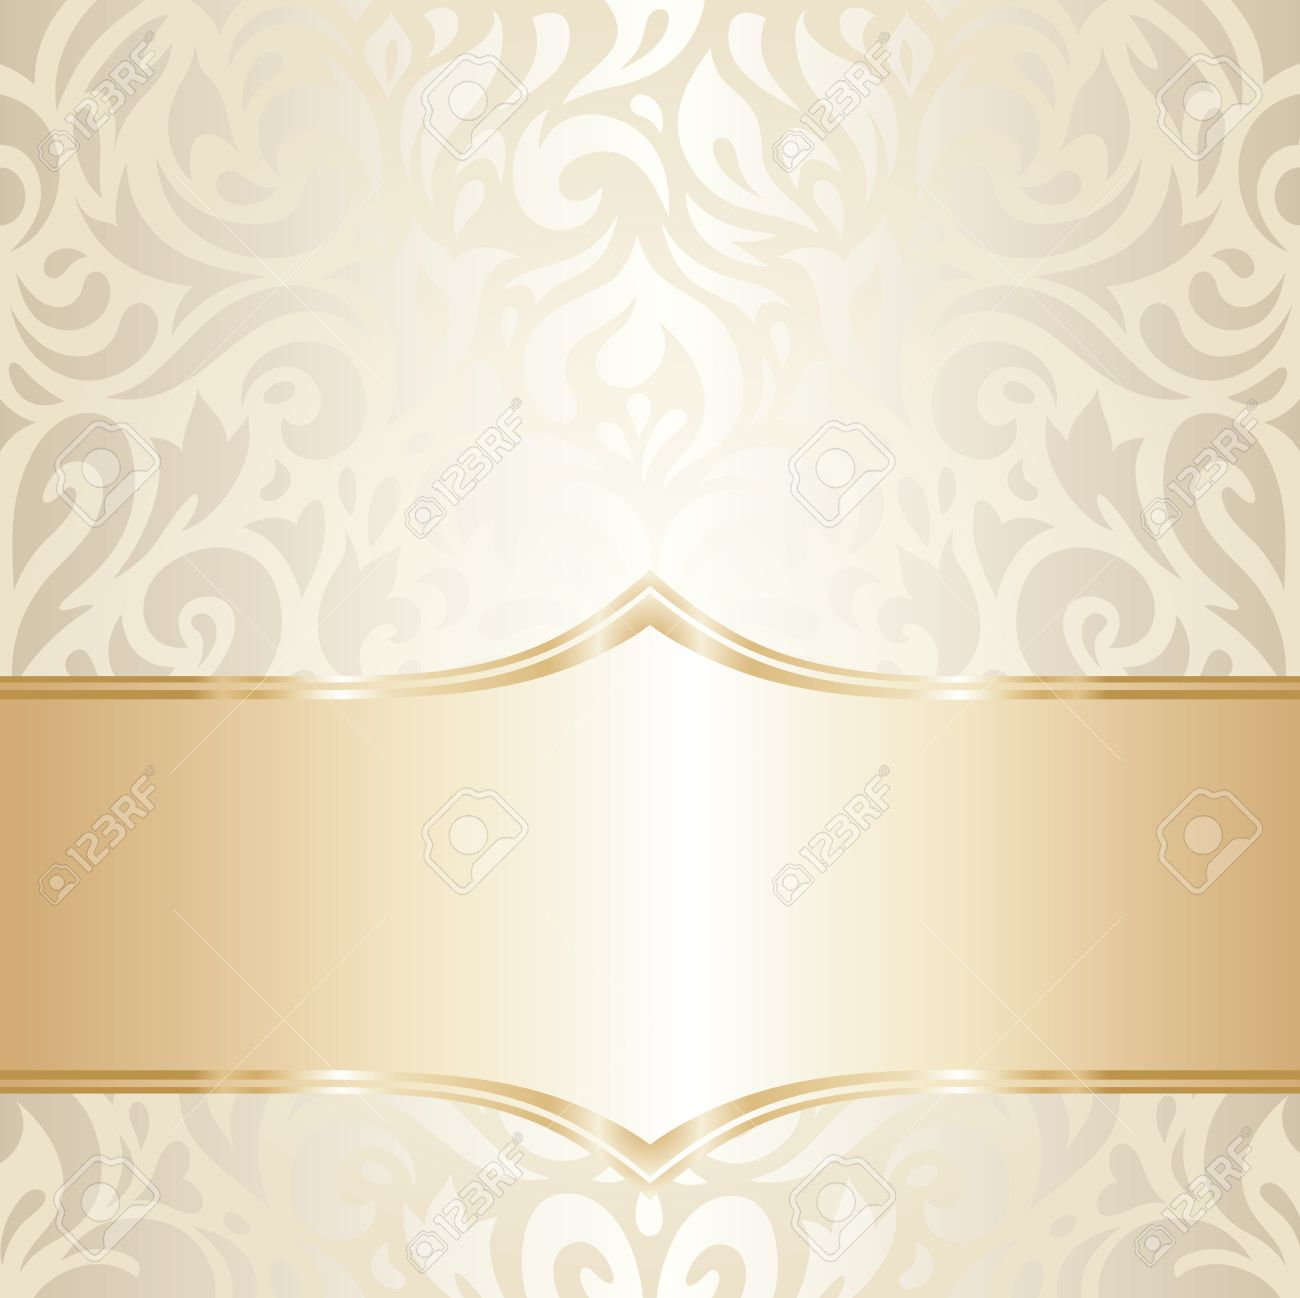 gorgeous golden floral wedding vintage wallpaper background design royalty free cliparts vectors and stock illustration image 53426371 gorgeous golden floral wedding vintage wallpaper background design